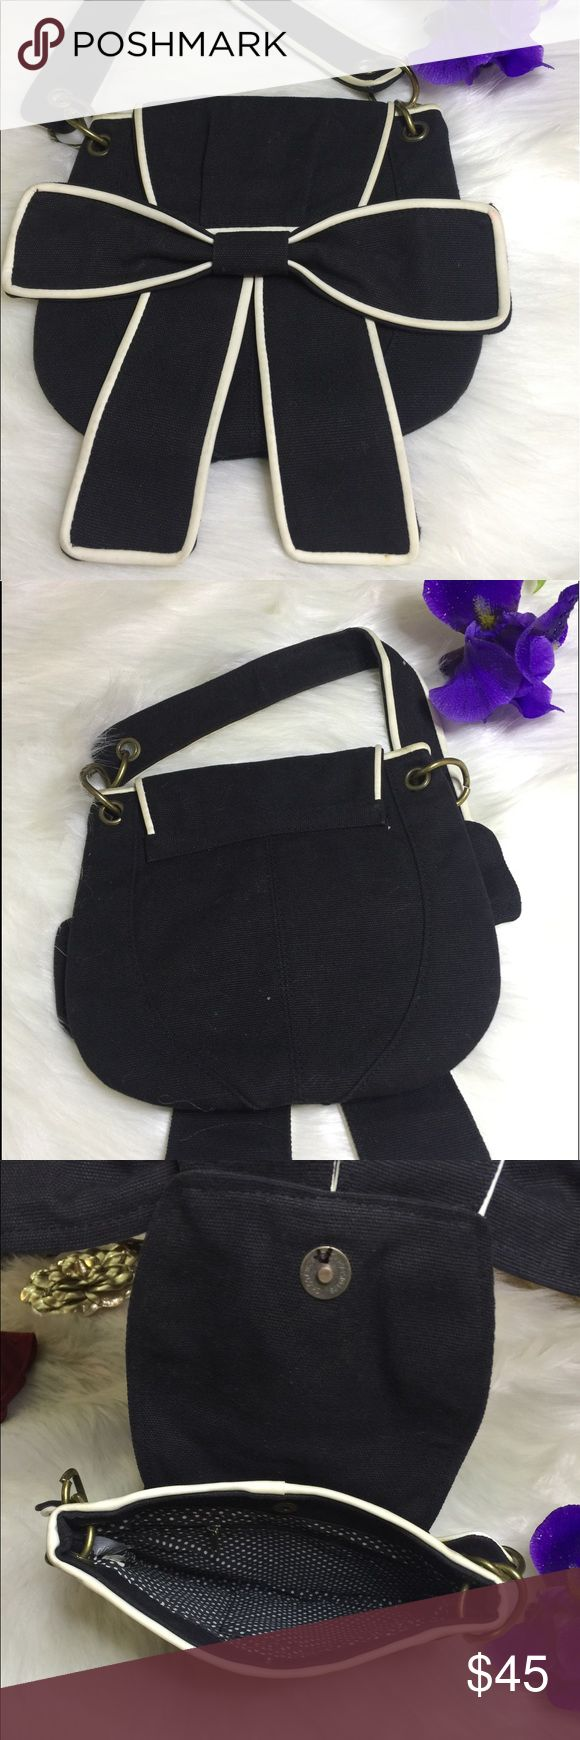 """Beautiful Black Bow Shoulder Bag - White Piping Beautiful black Bow Front shoulder bag with white piping with polka dot lining  Fantastic condition perfect for any occasion this is just the cutest purse ever.  Canvas exterior,  zipper pocket. Dimensions: 5"""" drop from handles. 7"""" wide, 7"""" tall. Got so many compliments when I used to carry this. Delia's Bags Shoulder Bags"""